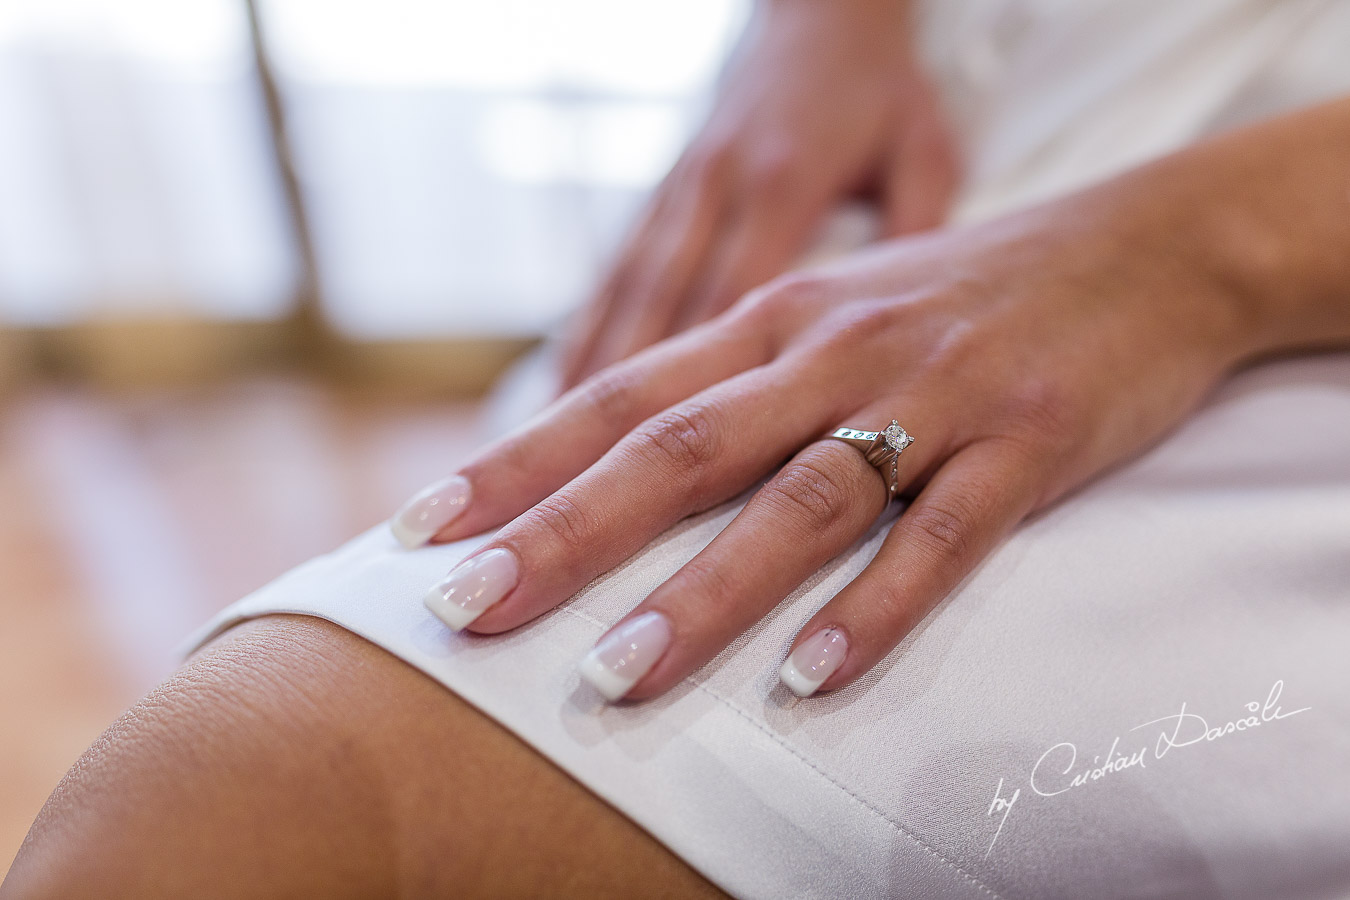 Moments from the bride's getting ready captured at an elegant and romantic wedding at Elias Beach Hotel by Cristian Dascalu.